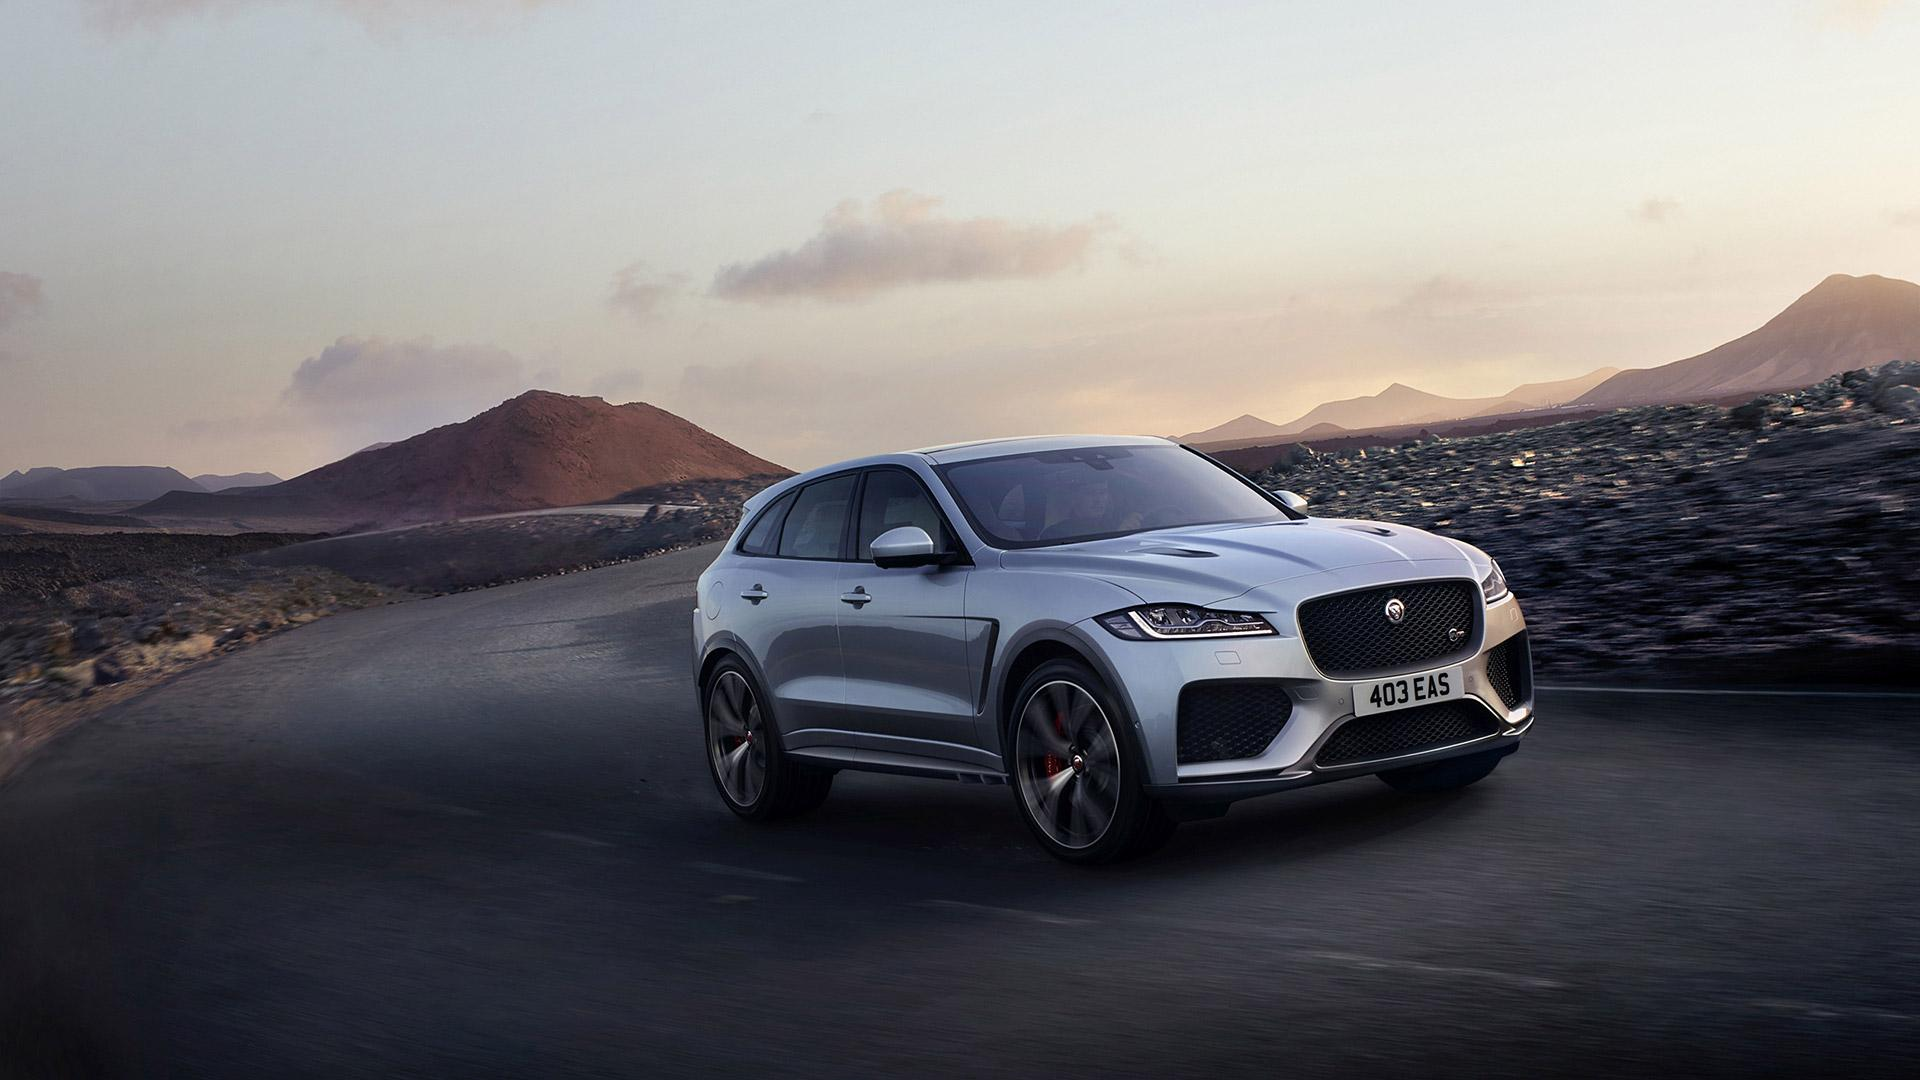 2019 Jaguar F-Pace SVR Wallpapers & HD Images - WSupercars